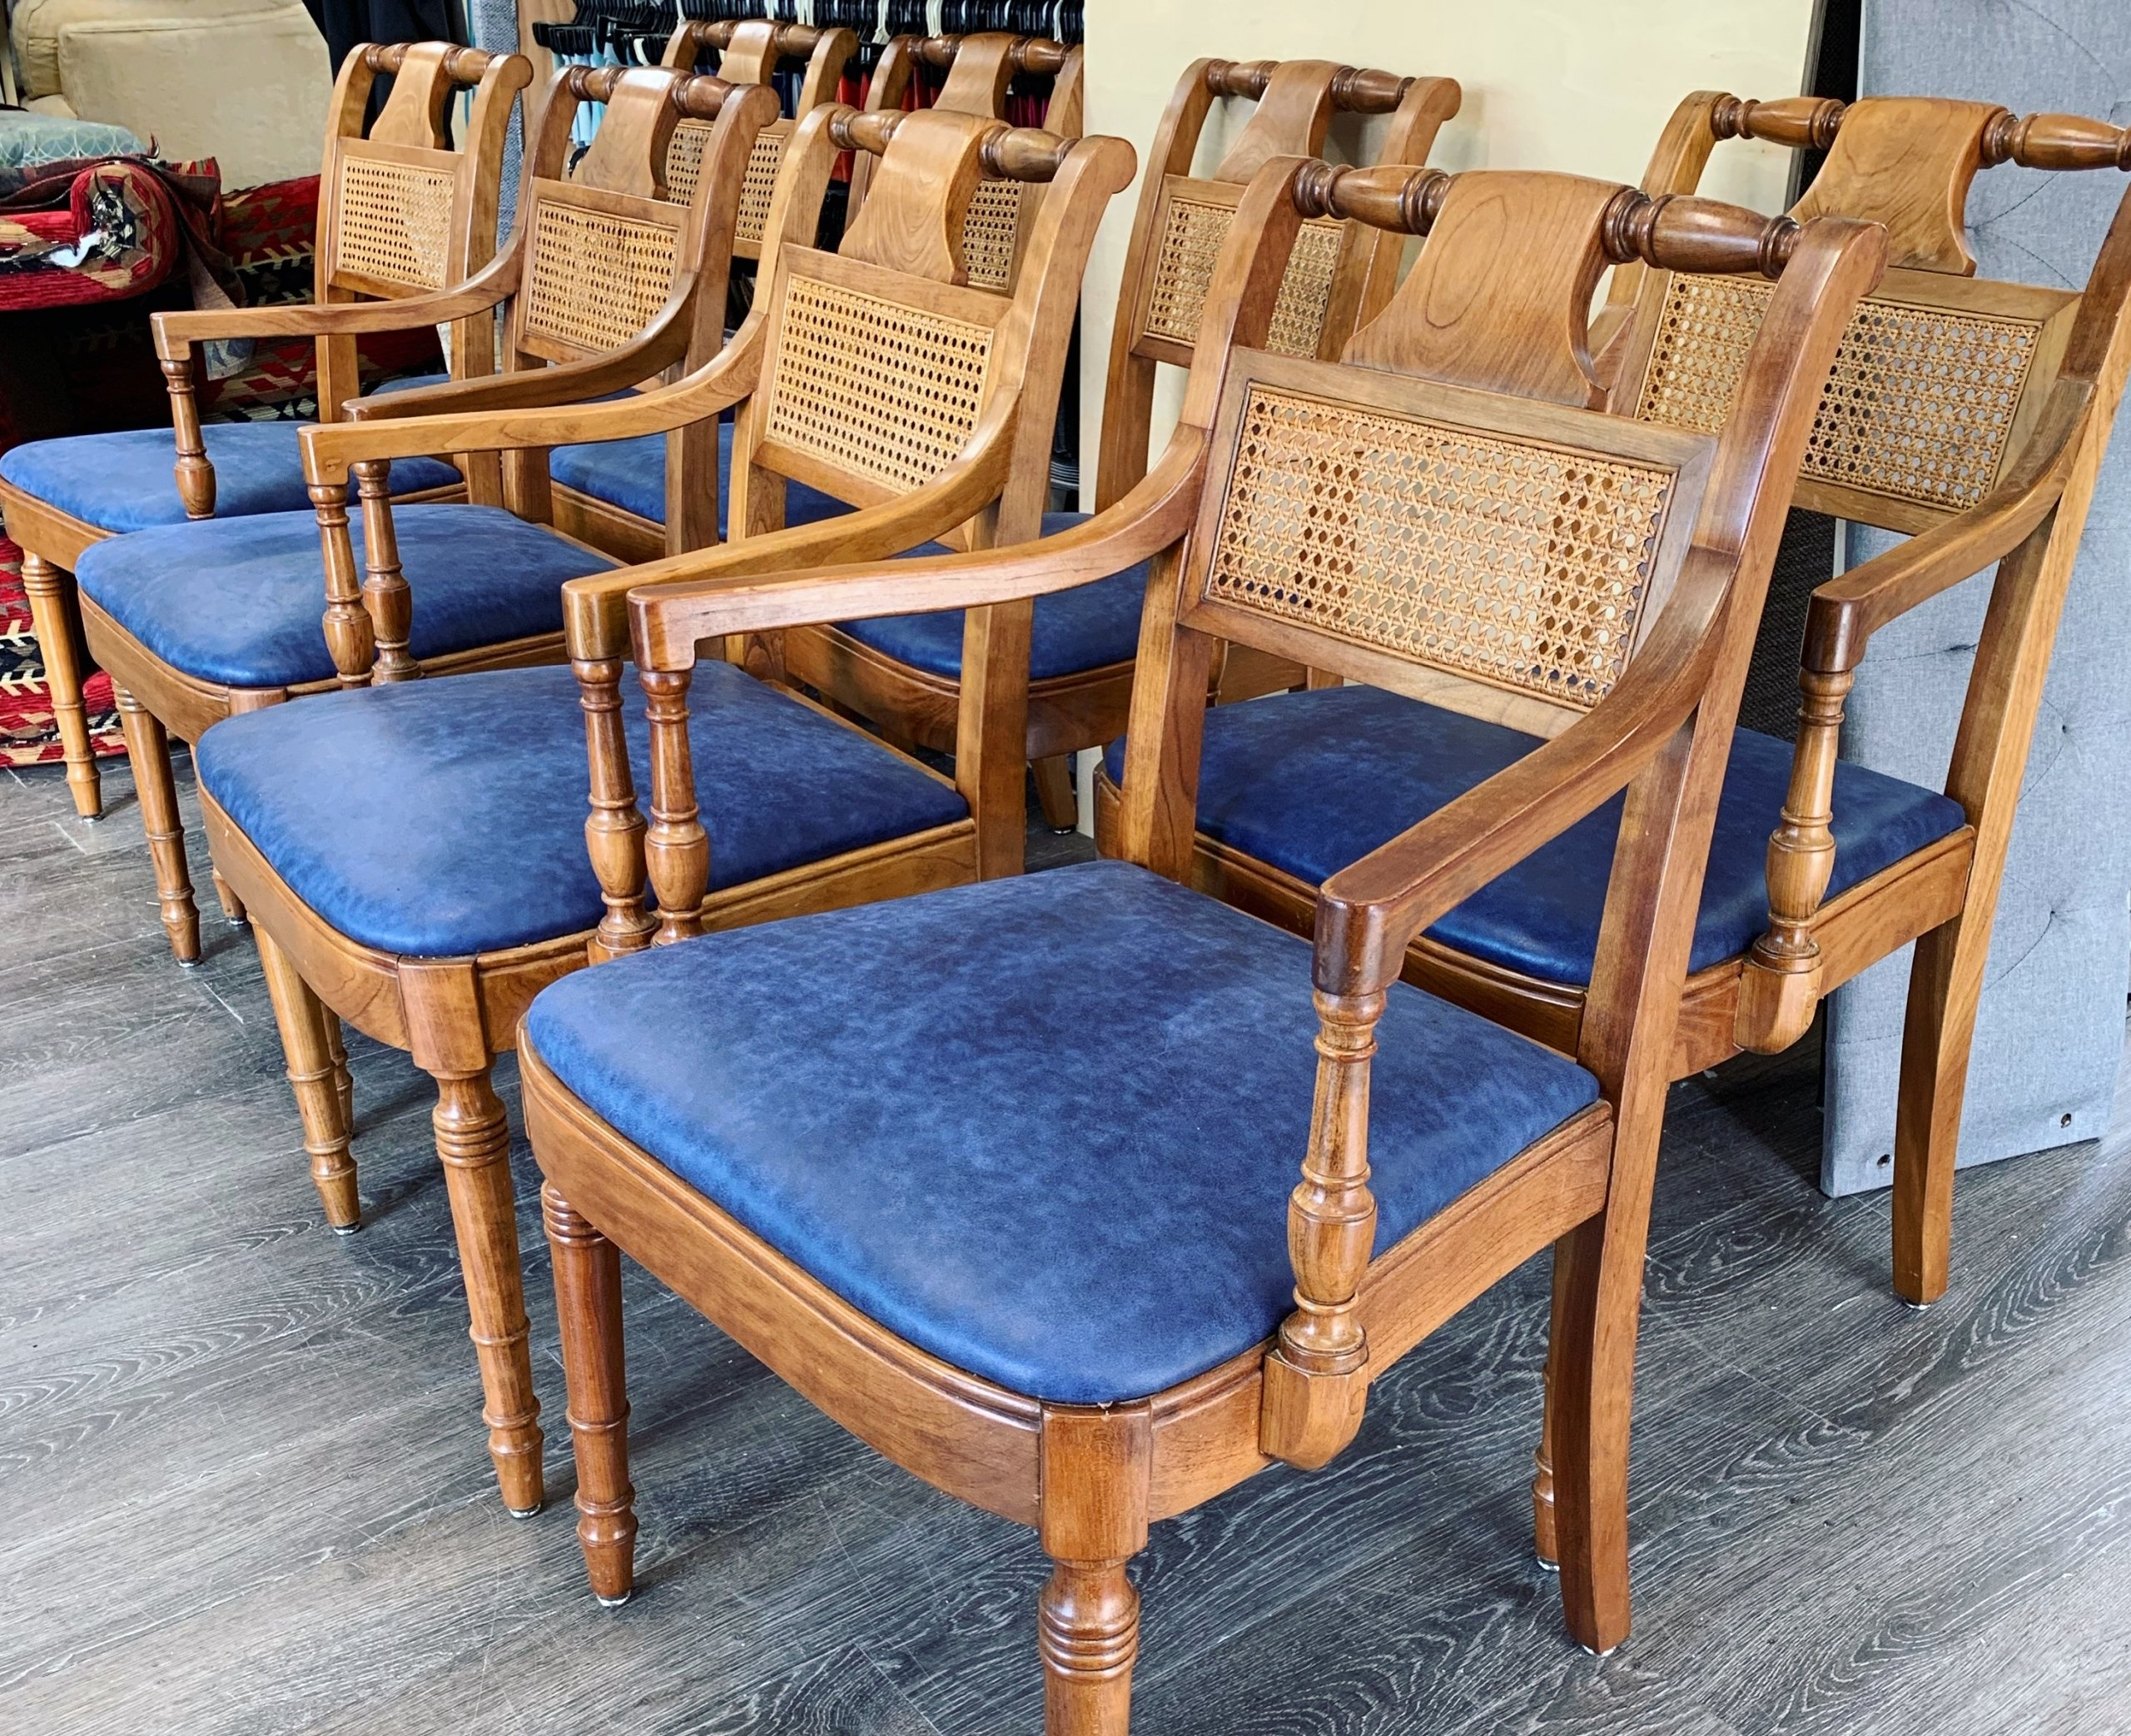 restored antique wooden chairs with leather upholstery